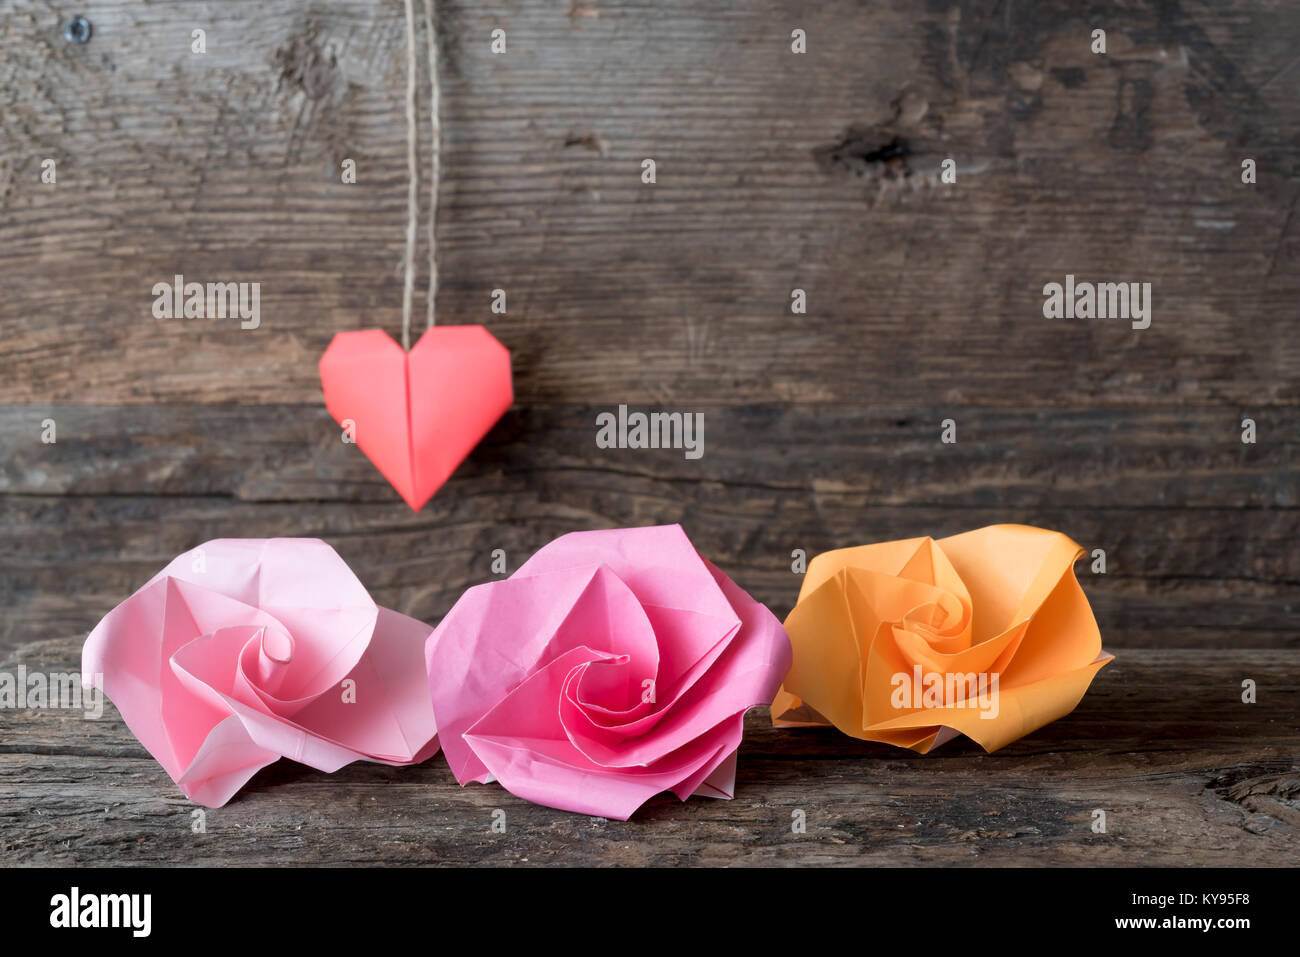 Origami Paper Flowers In Red Pink And Orange For Valentines Day